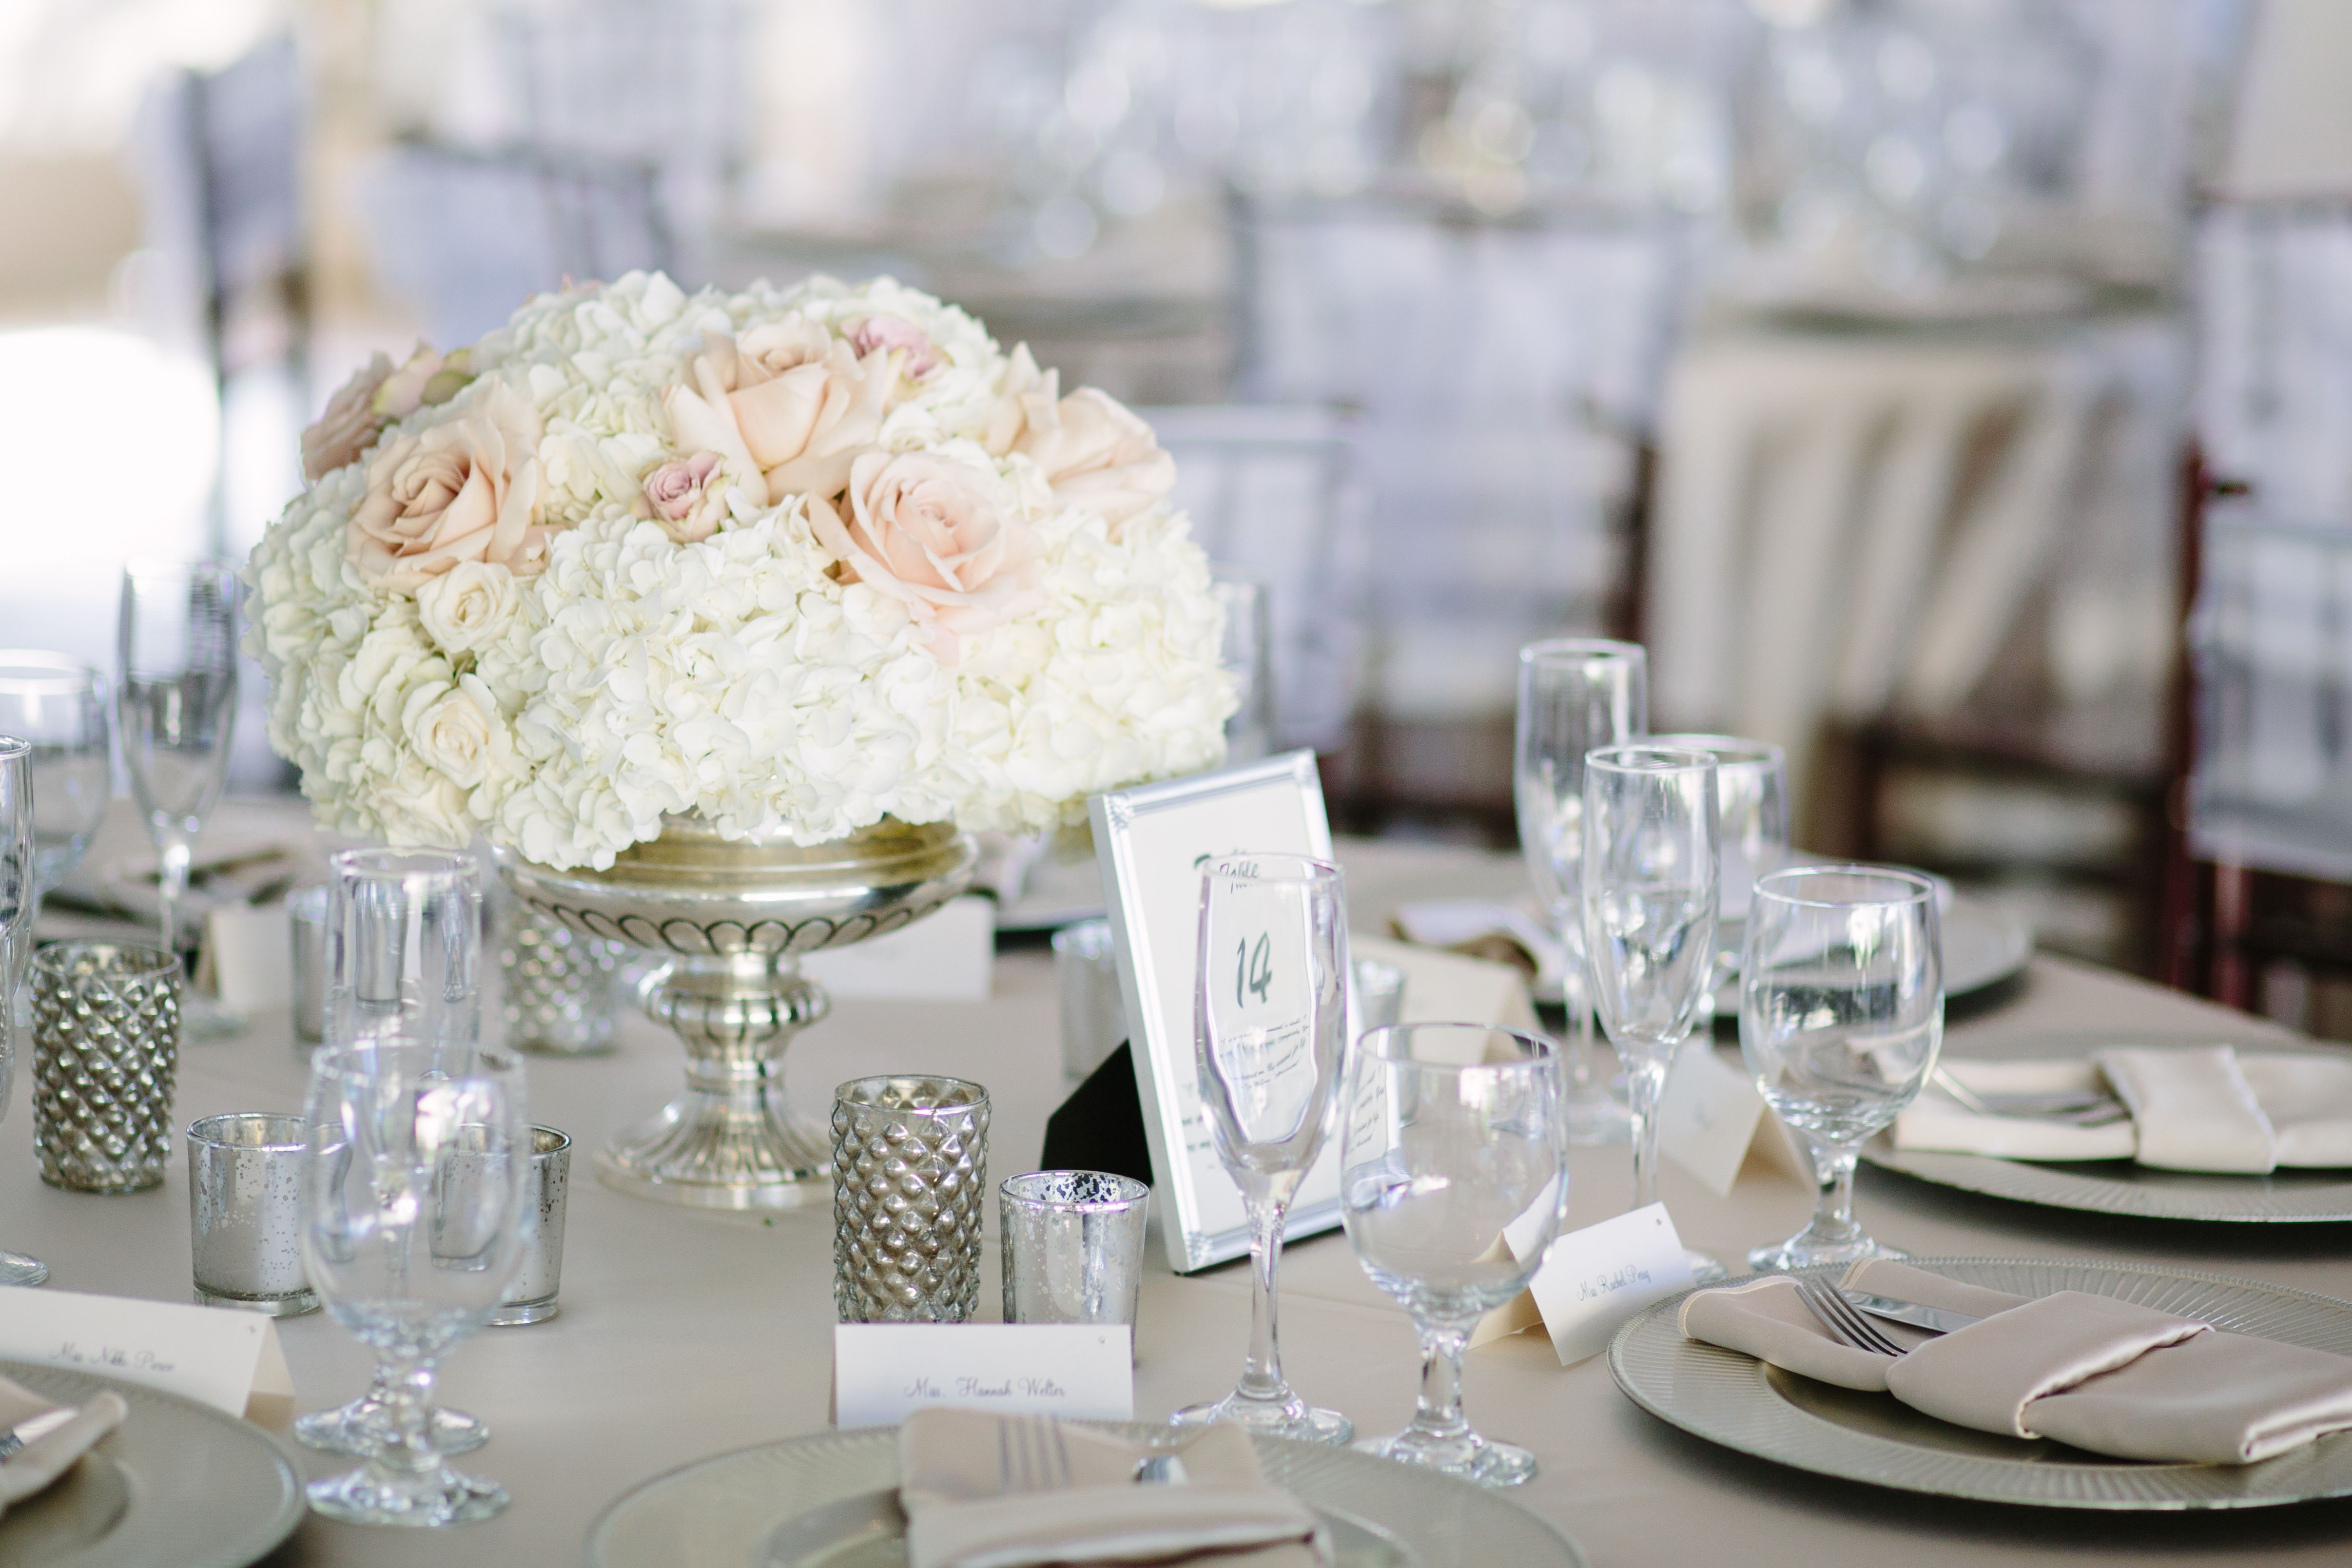 Pin by A Warren on Flowers | Pinterest | Wedding table centerpieces ...